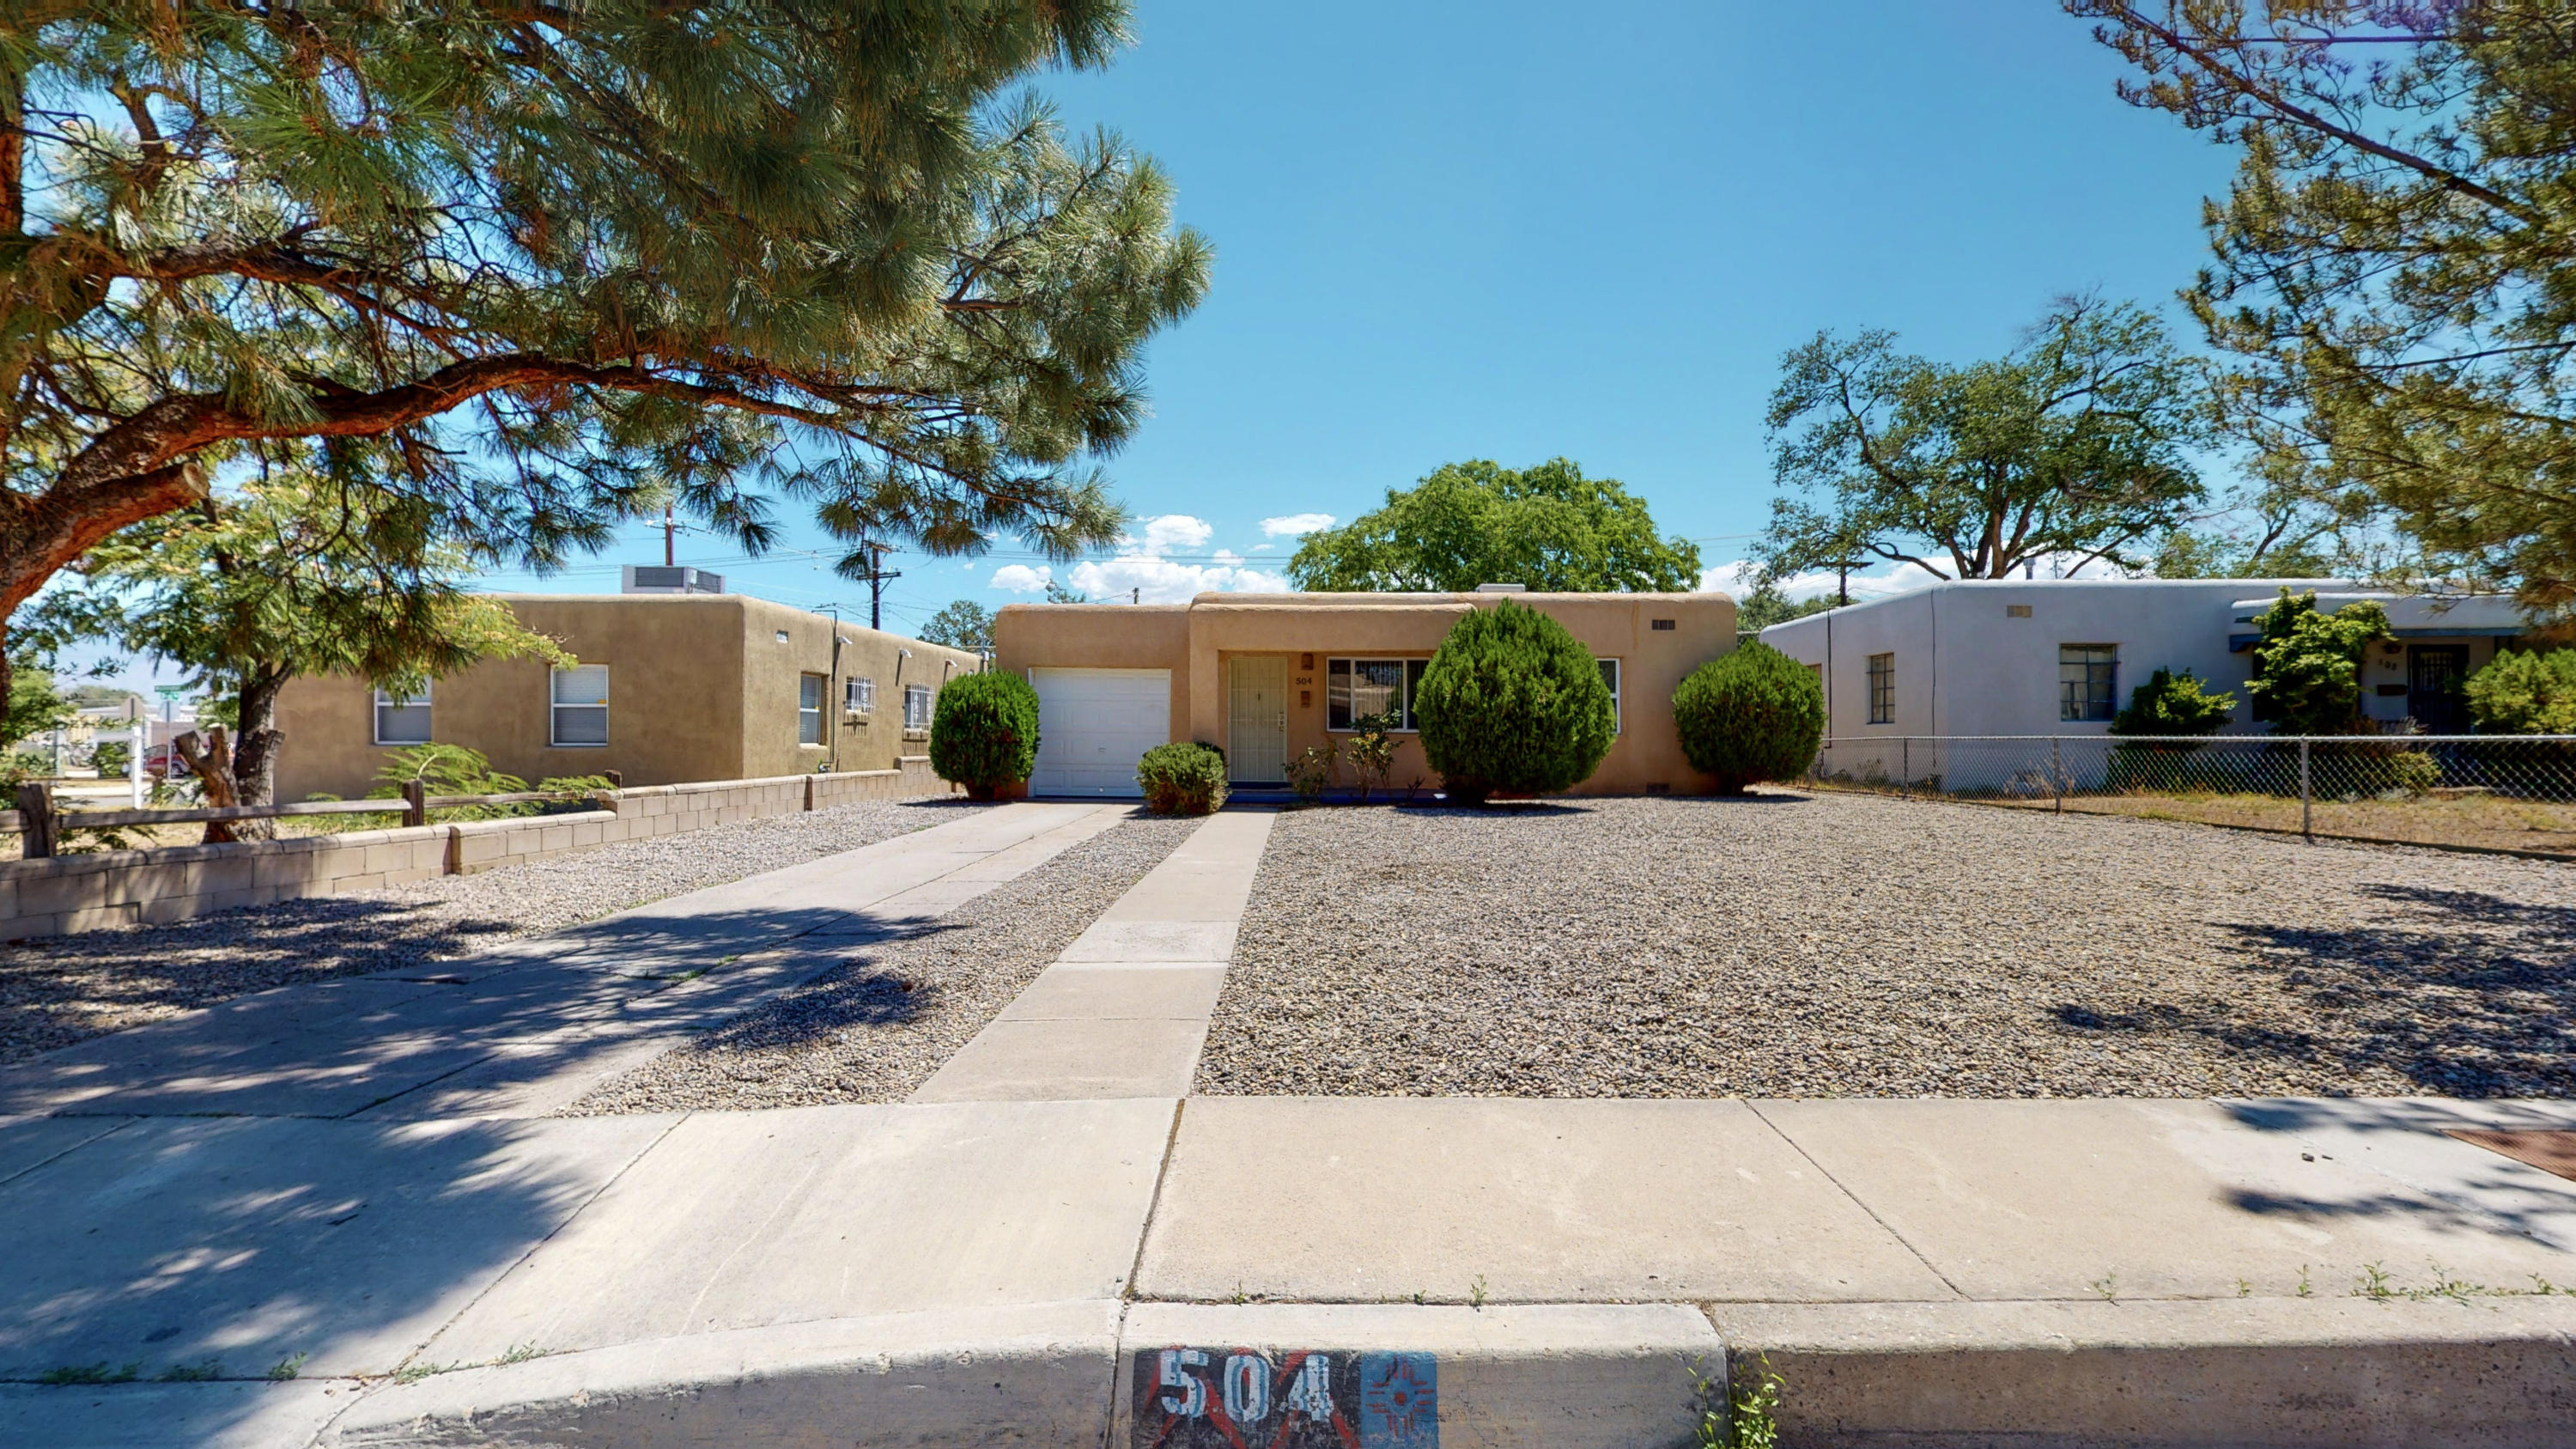 Come see this beautiful cozy home conveniently located in SE Albuquerque close to Nob Hill and UNM. This home features 2 Bedrooms, 1 Bathroom, 1 Car garage, new paint, new carpet and a huge backyard.